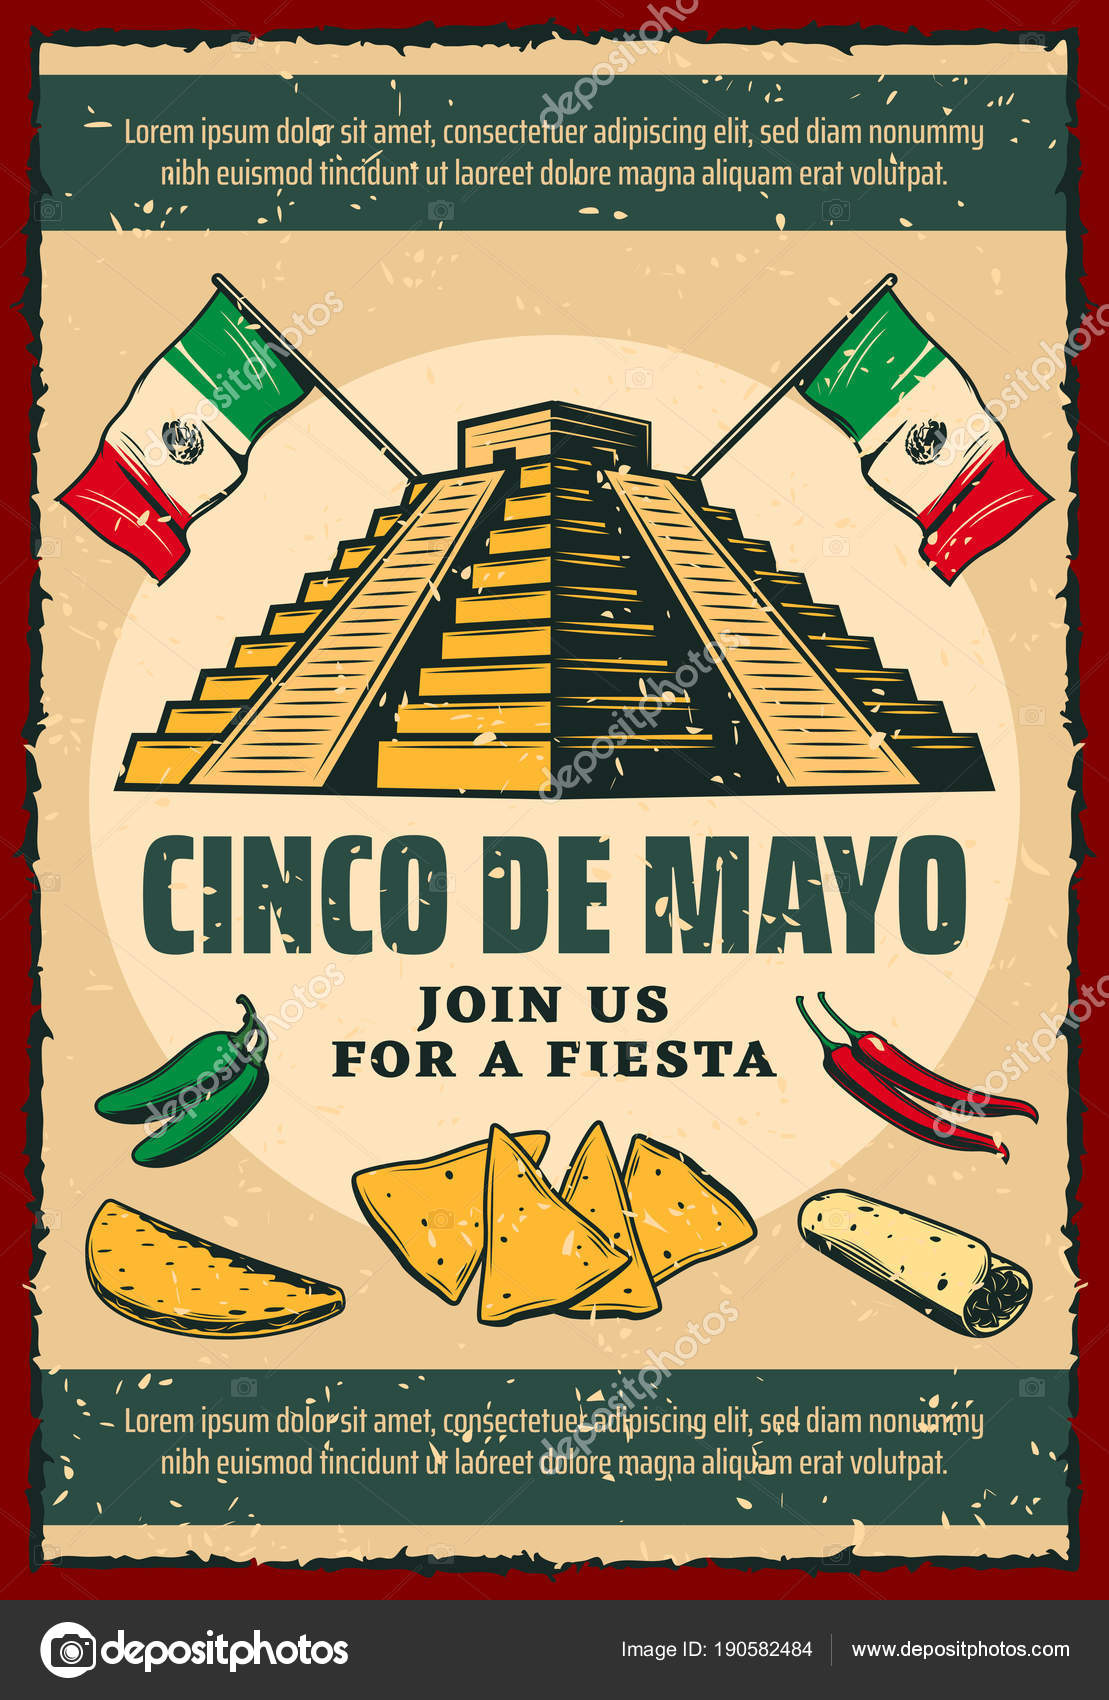 Cinco de mayo fiesta party retro invitation poster stock vector cinco de mayo fiesta party invitation poster for mexican holiday ancient aztec pyramid with mexico flag chili pepper and jalapeno taco nacho and burrito stopboris